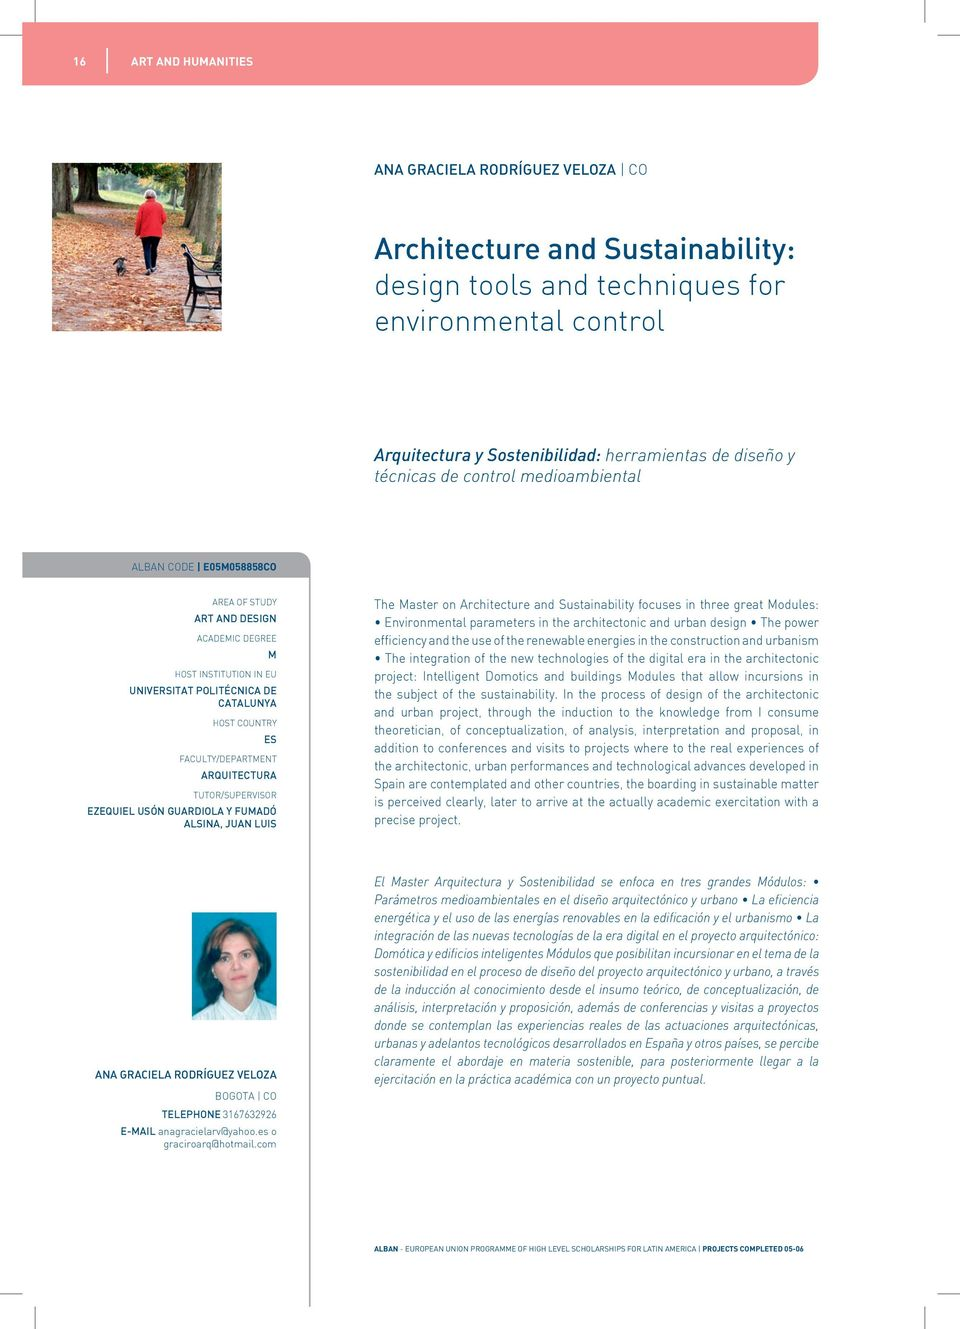 Architecture and Sustainability focuses in three great odules: Environmental parameters in the architectonic and urban design The power efficiency and the use of the renewable energies in the